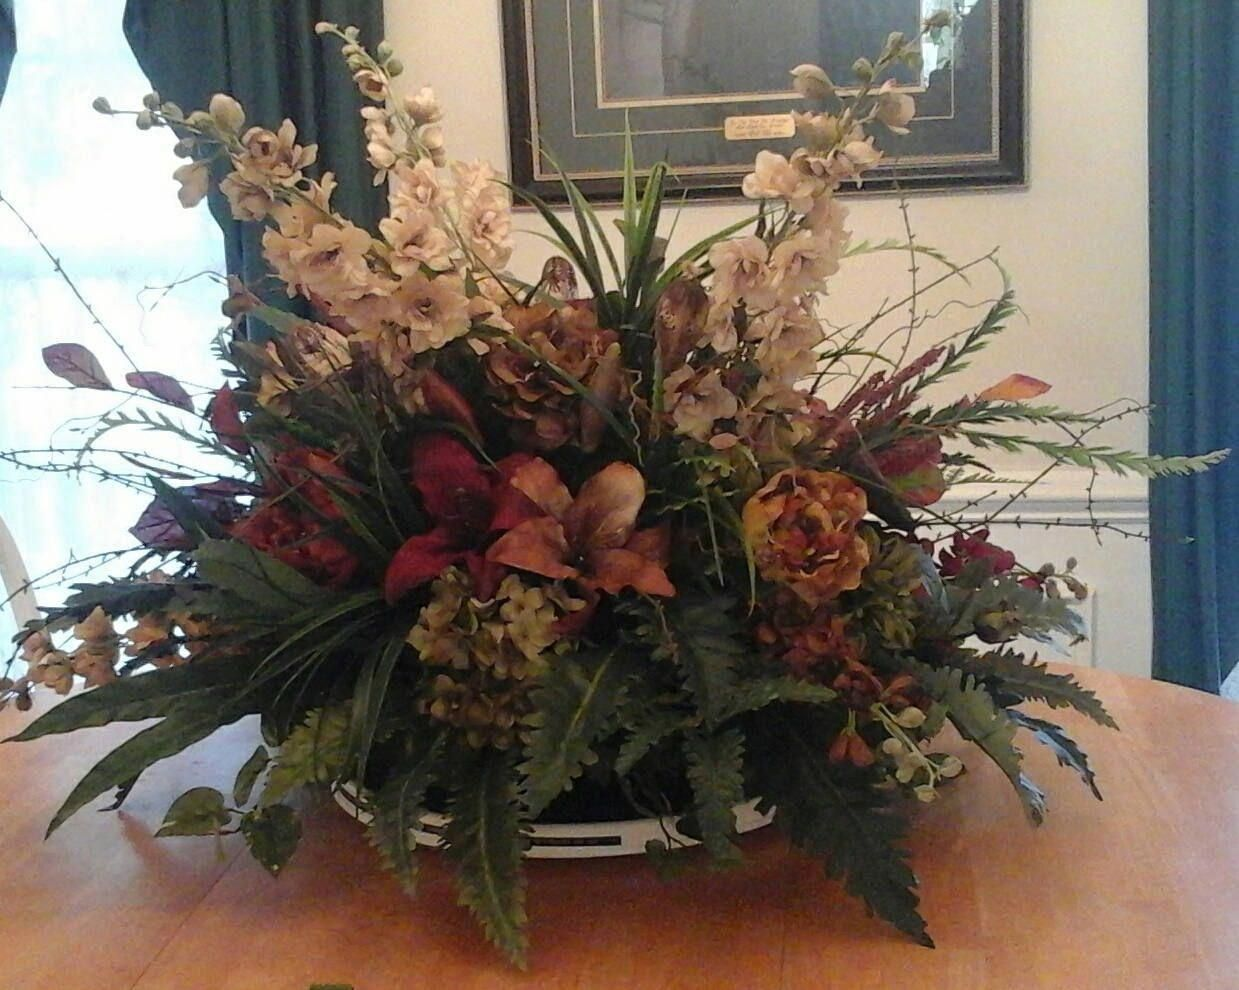 Floral Arrangement Extra Large Table Centerpiece Shipping Included Elegant Luxury Modern Si Table Flower Arrangements Large Floral Arrangements Table Flower